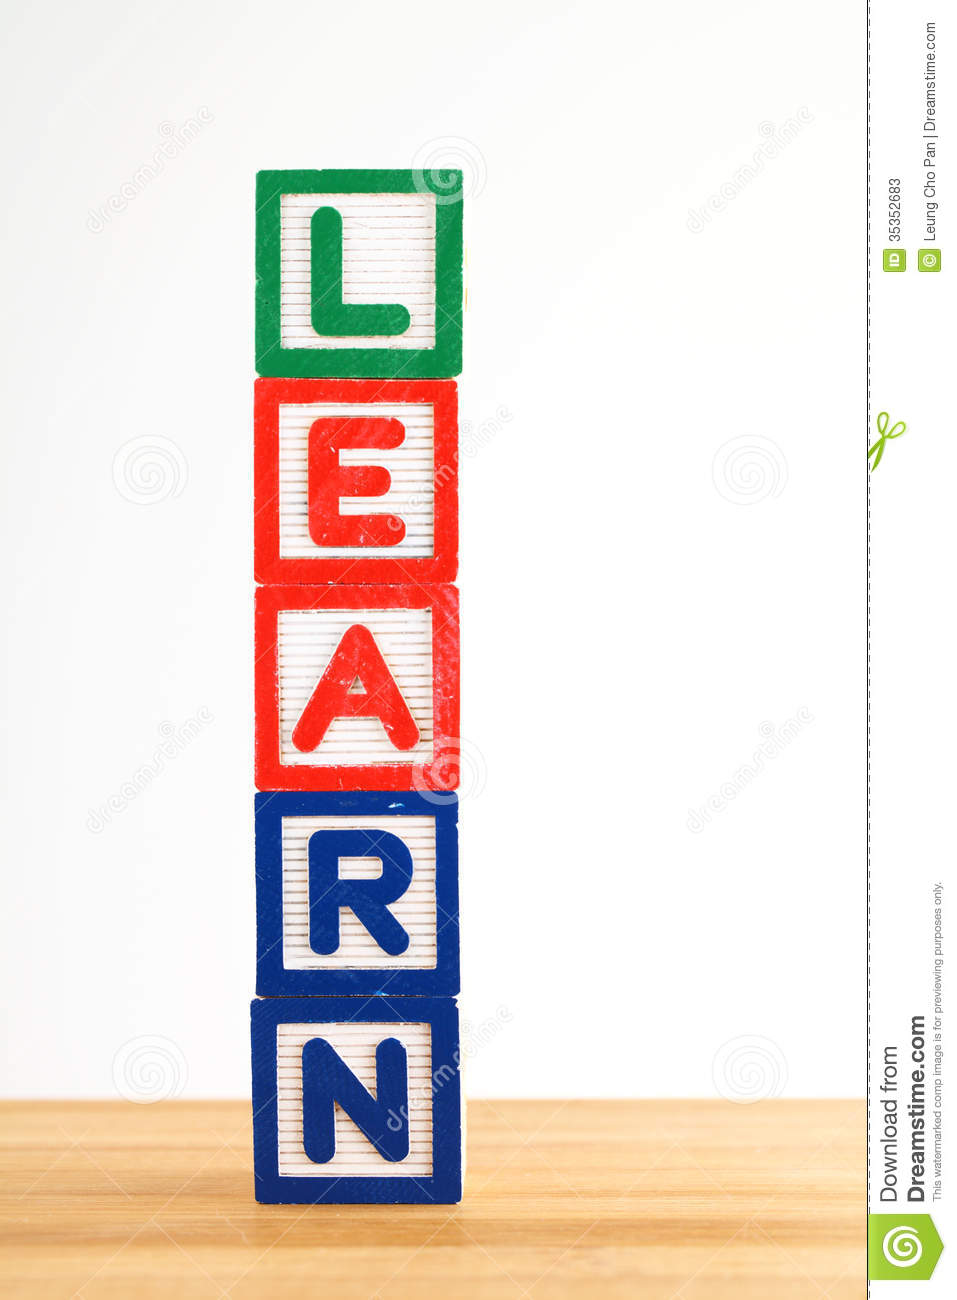 Alphabet Building Blocks That Spelling The Word Learn ...